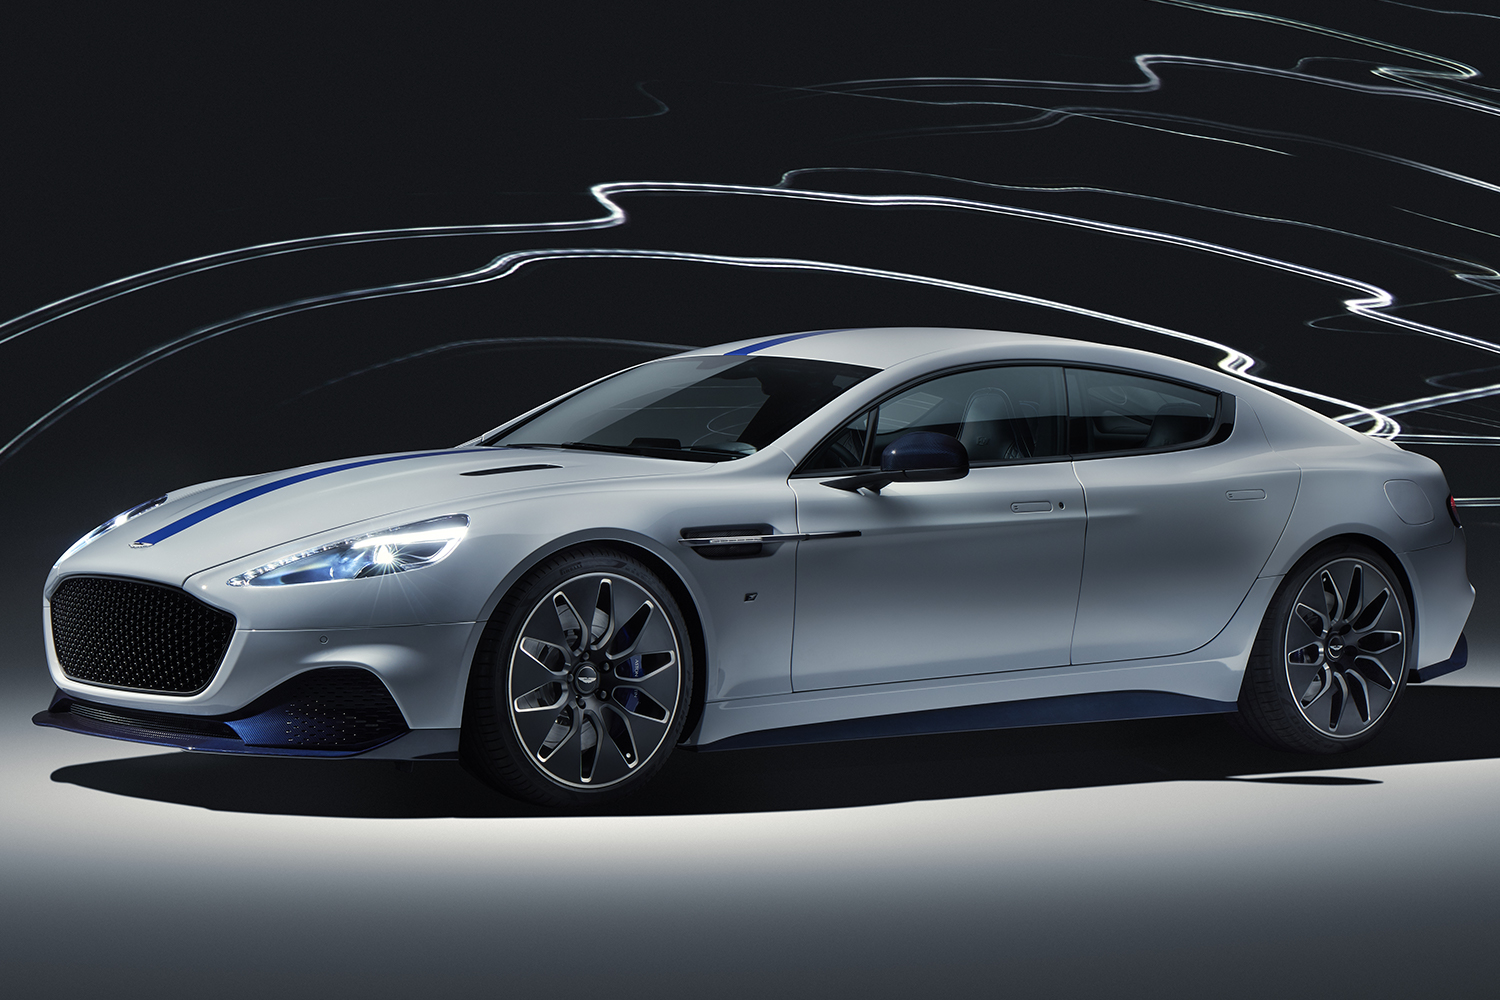 The Rapide E, Aston Martin's first all-electric vehicle, is available to order.